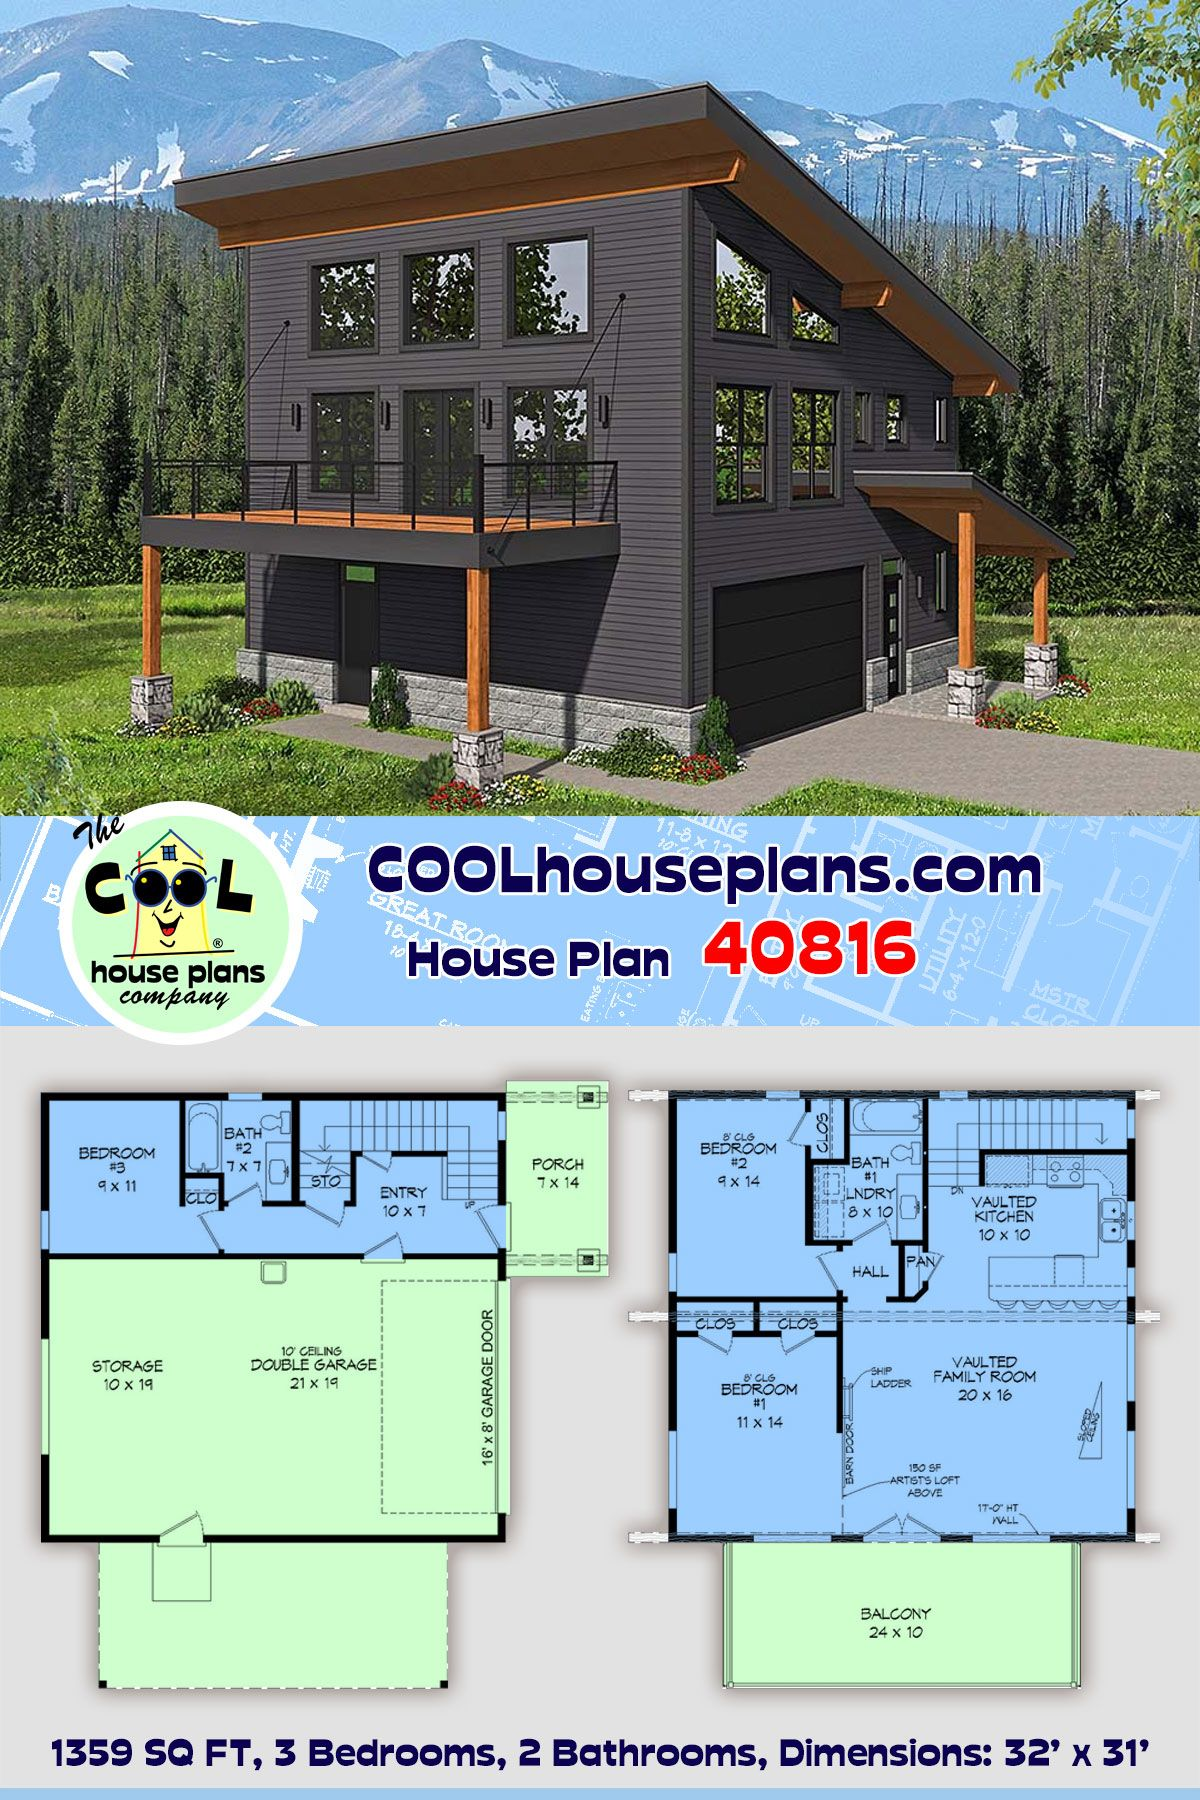 Modern Style Garage Living Plan 40816 With 3 Bed 2 Bath 2 Car Garage Vacation House Plans Garage Apartment Plan House Plans